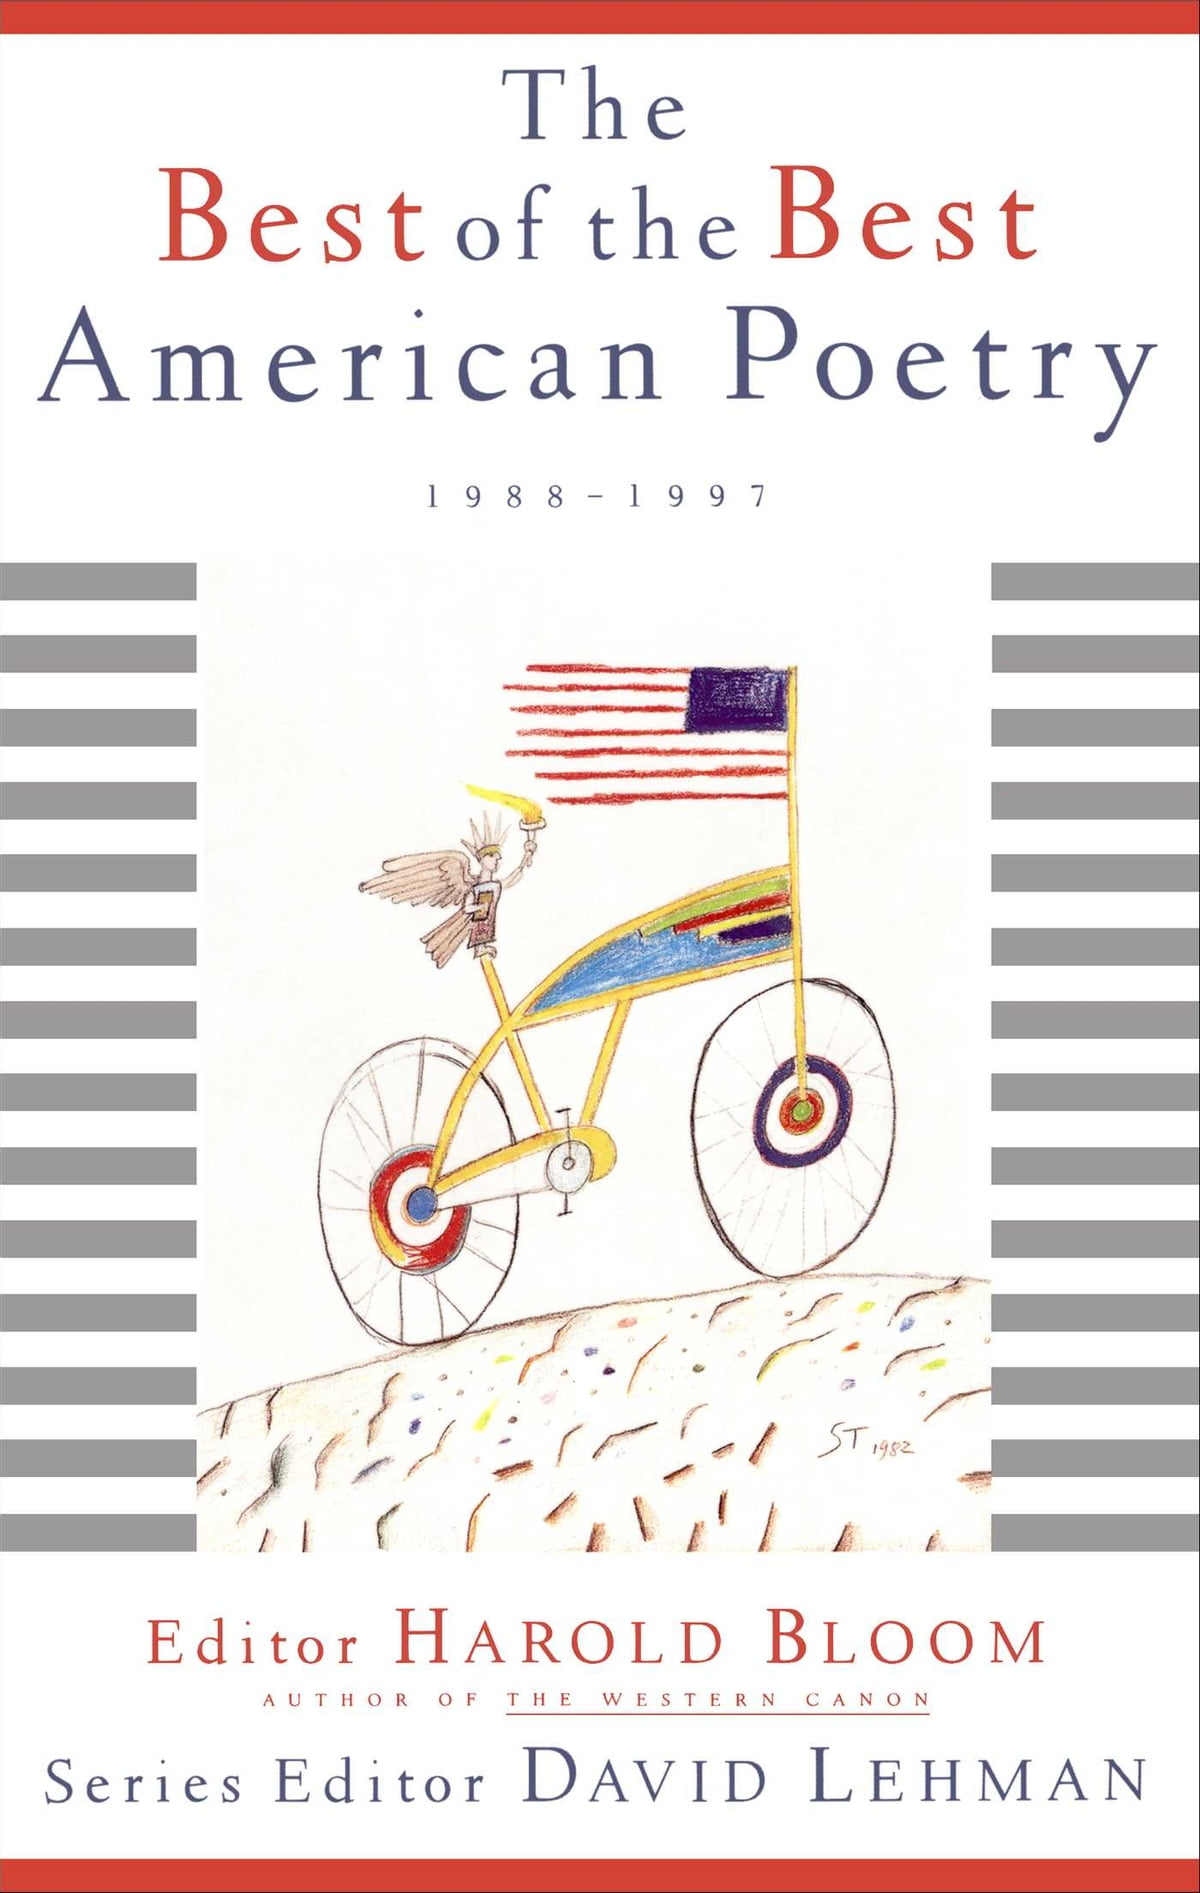 The best of the best american poetry ebook by david lehman the best of the best american poetry ebook by david lehman 9781439106068 rakuten kobo fandeluxe Ebook collections